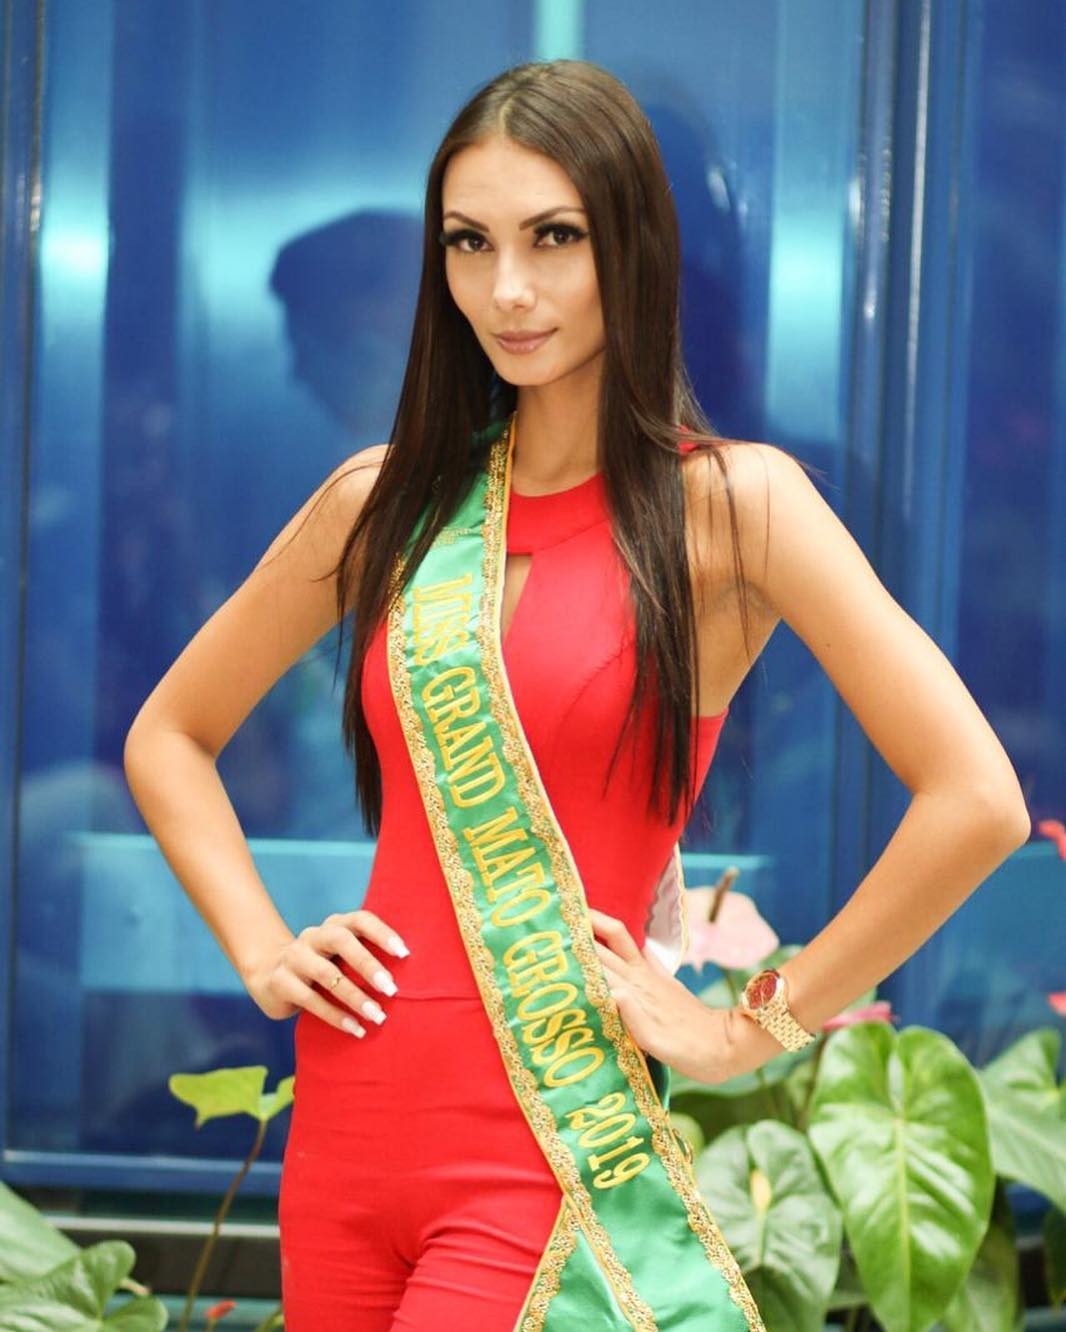 candidatas a miss grand brasil 2019. final: 28 feb. - Página 4 7are2fnh